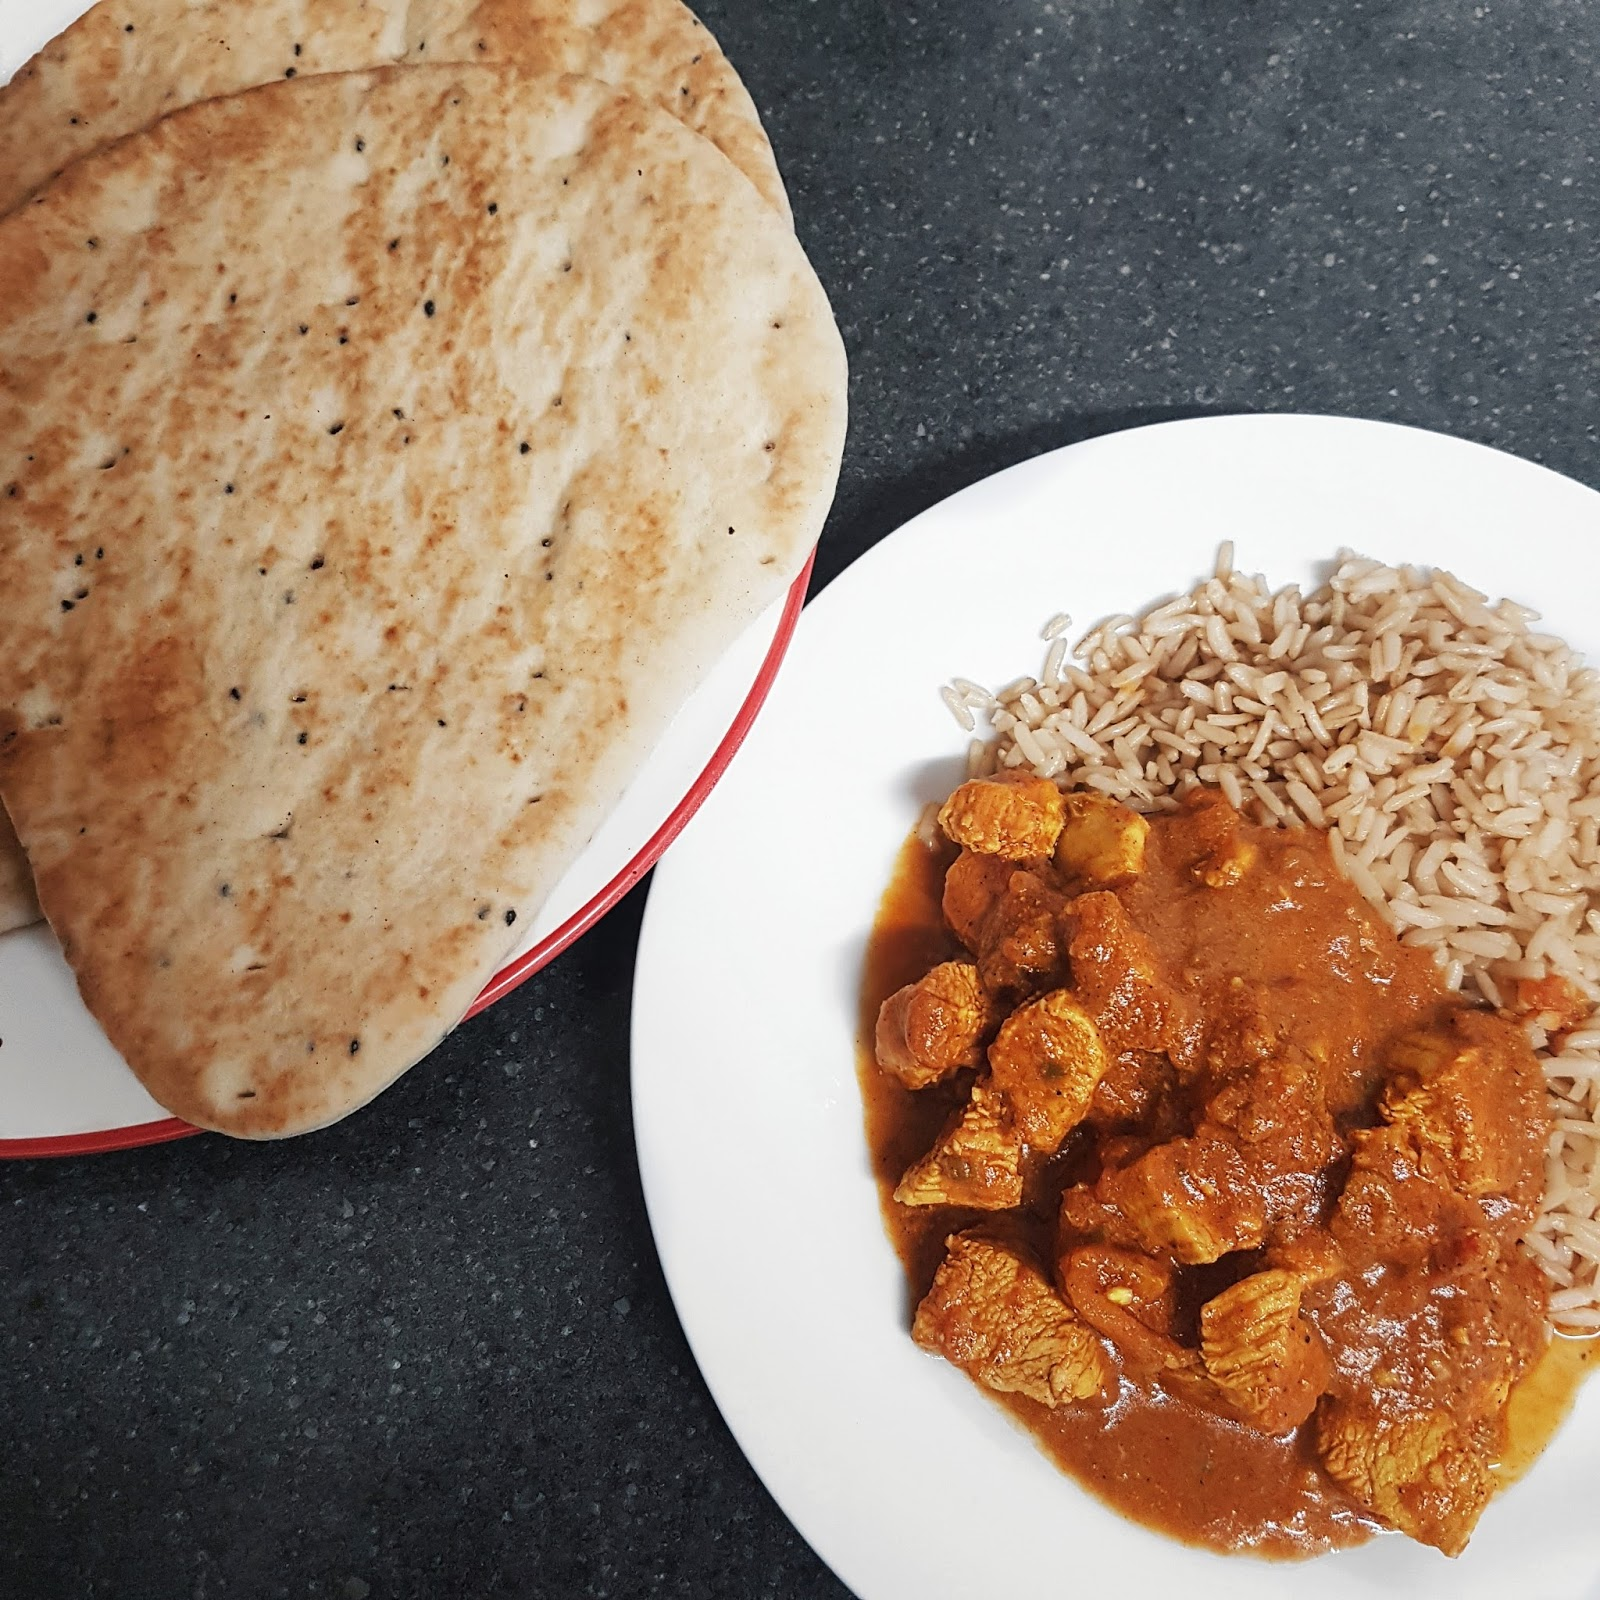 Curry and Naan Bread